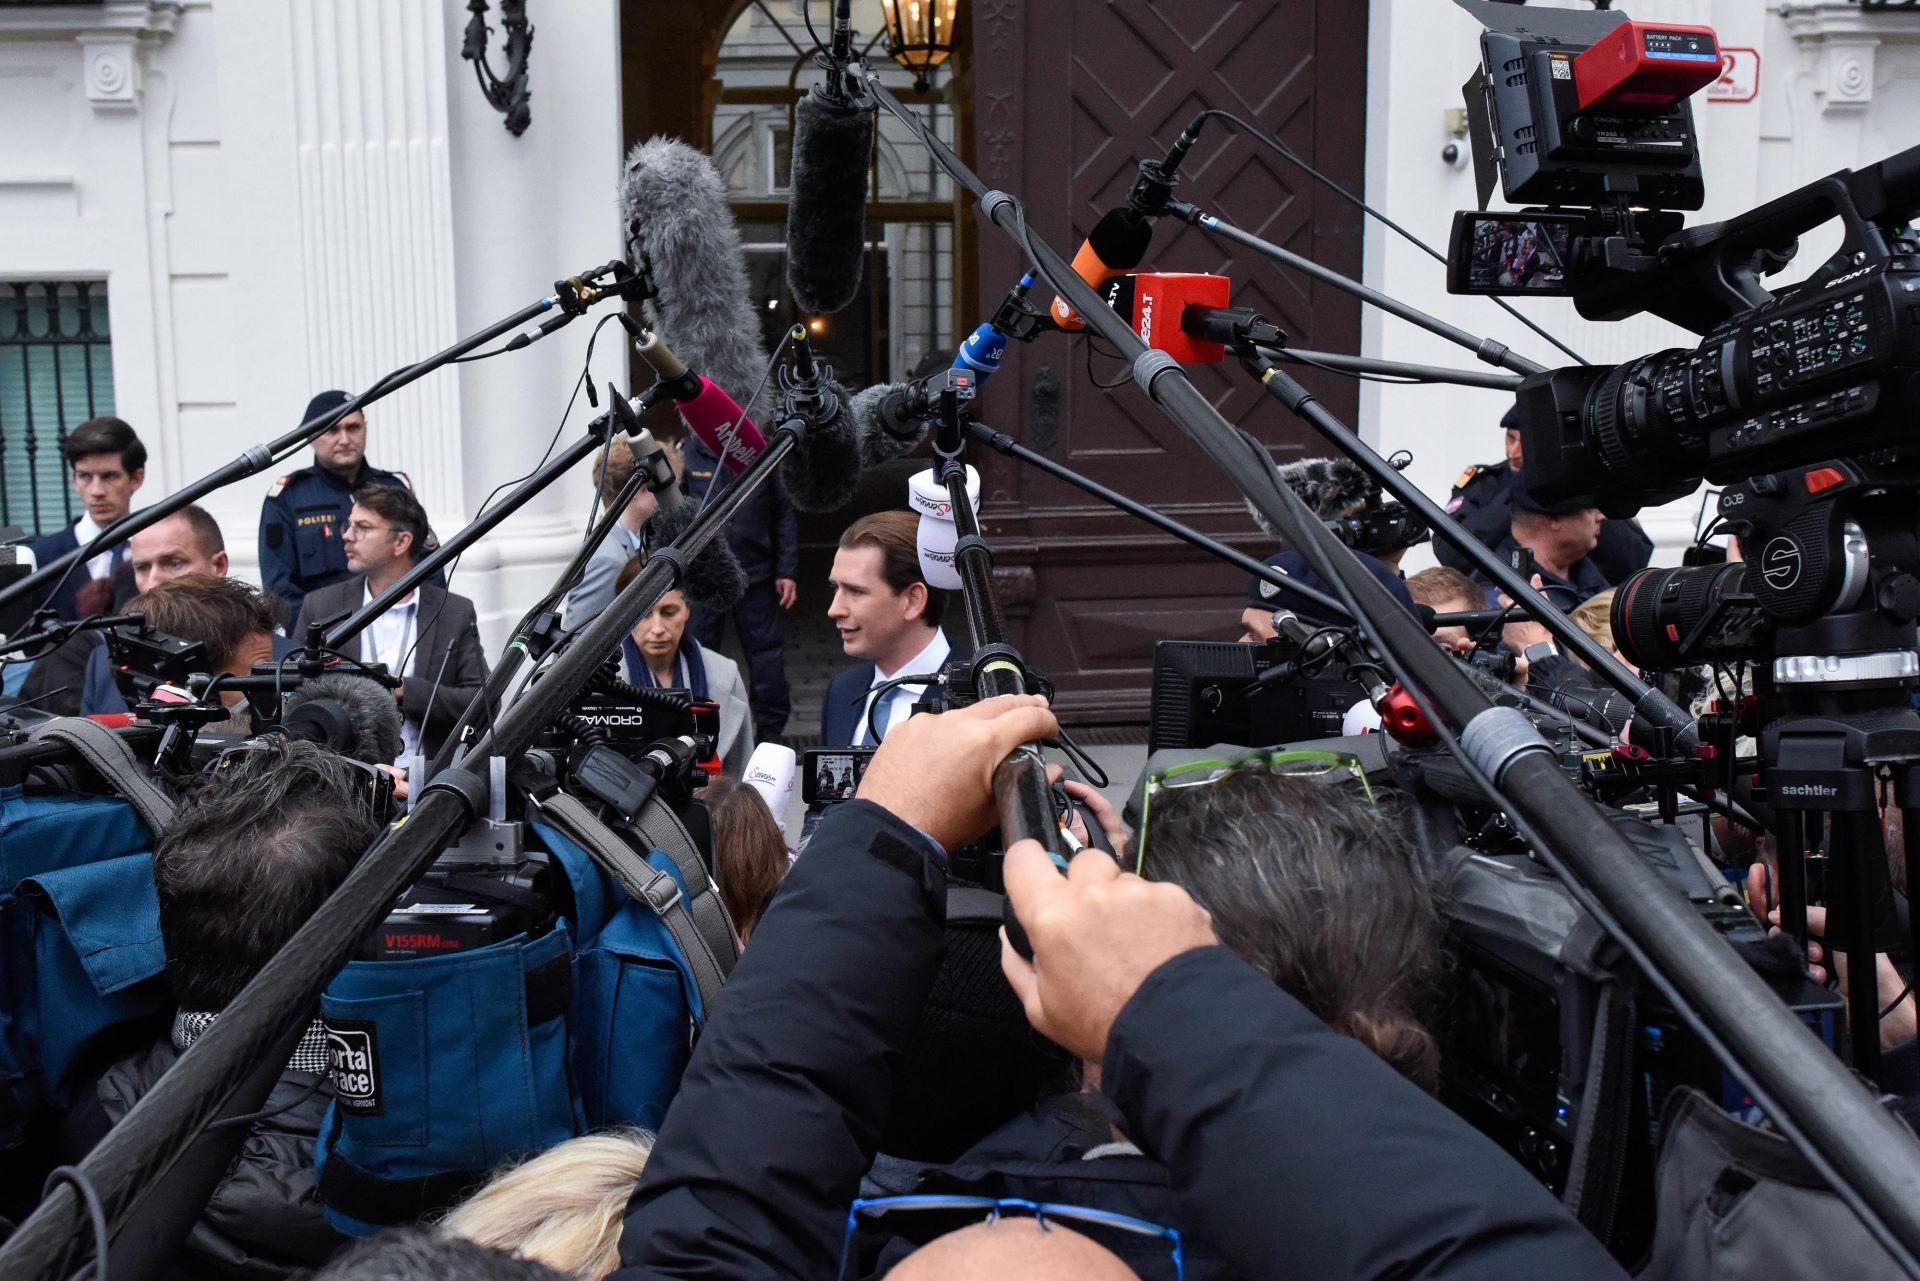 Man in the middle.. Sebastian Kurz at the centre of a media frenzy as the scandal around him deepened. Photo: Thomas Kronsteiner/Getty Images.